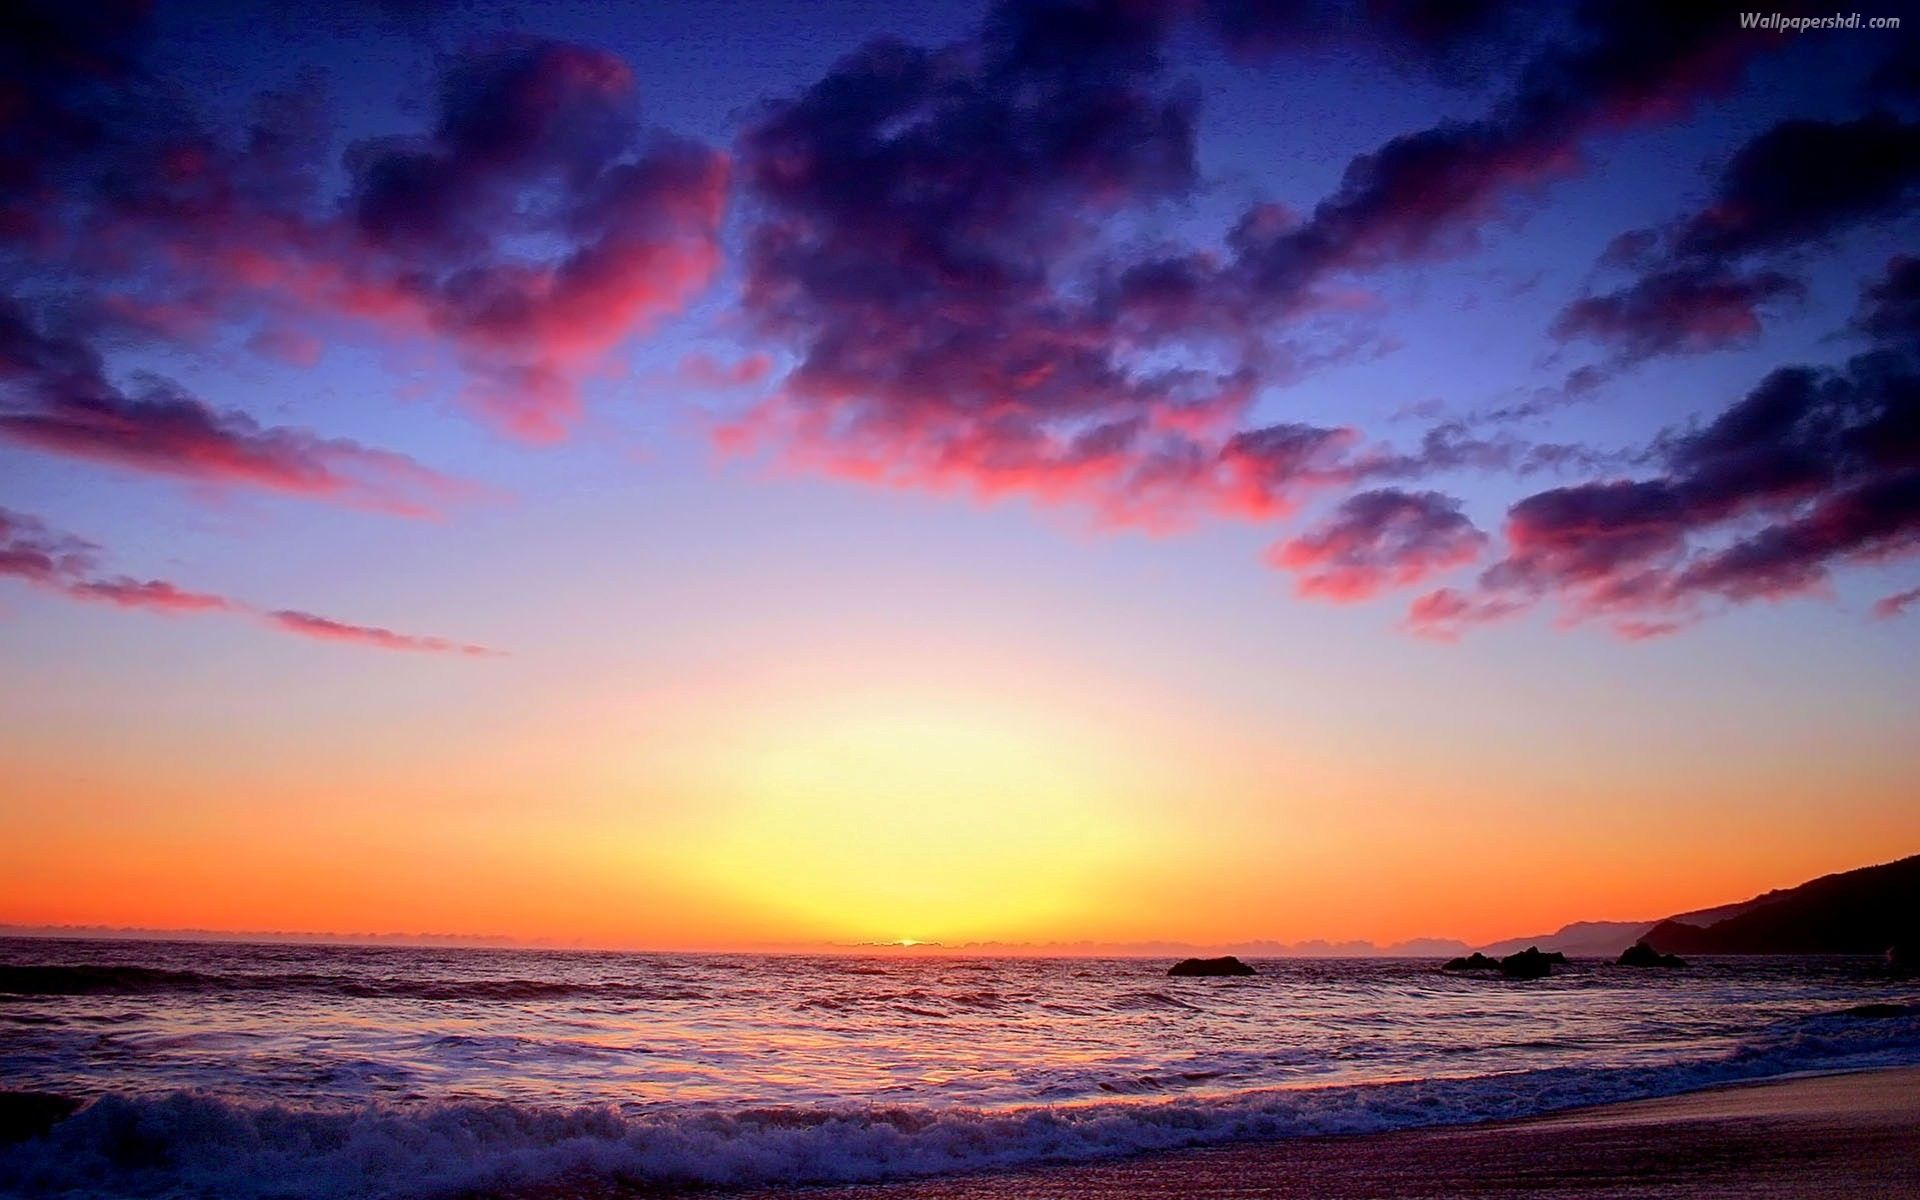 Pictures Of Sunsets At The Beach